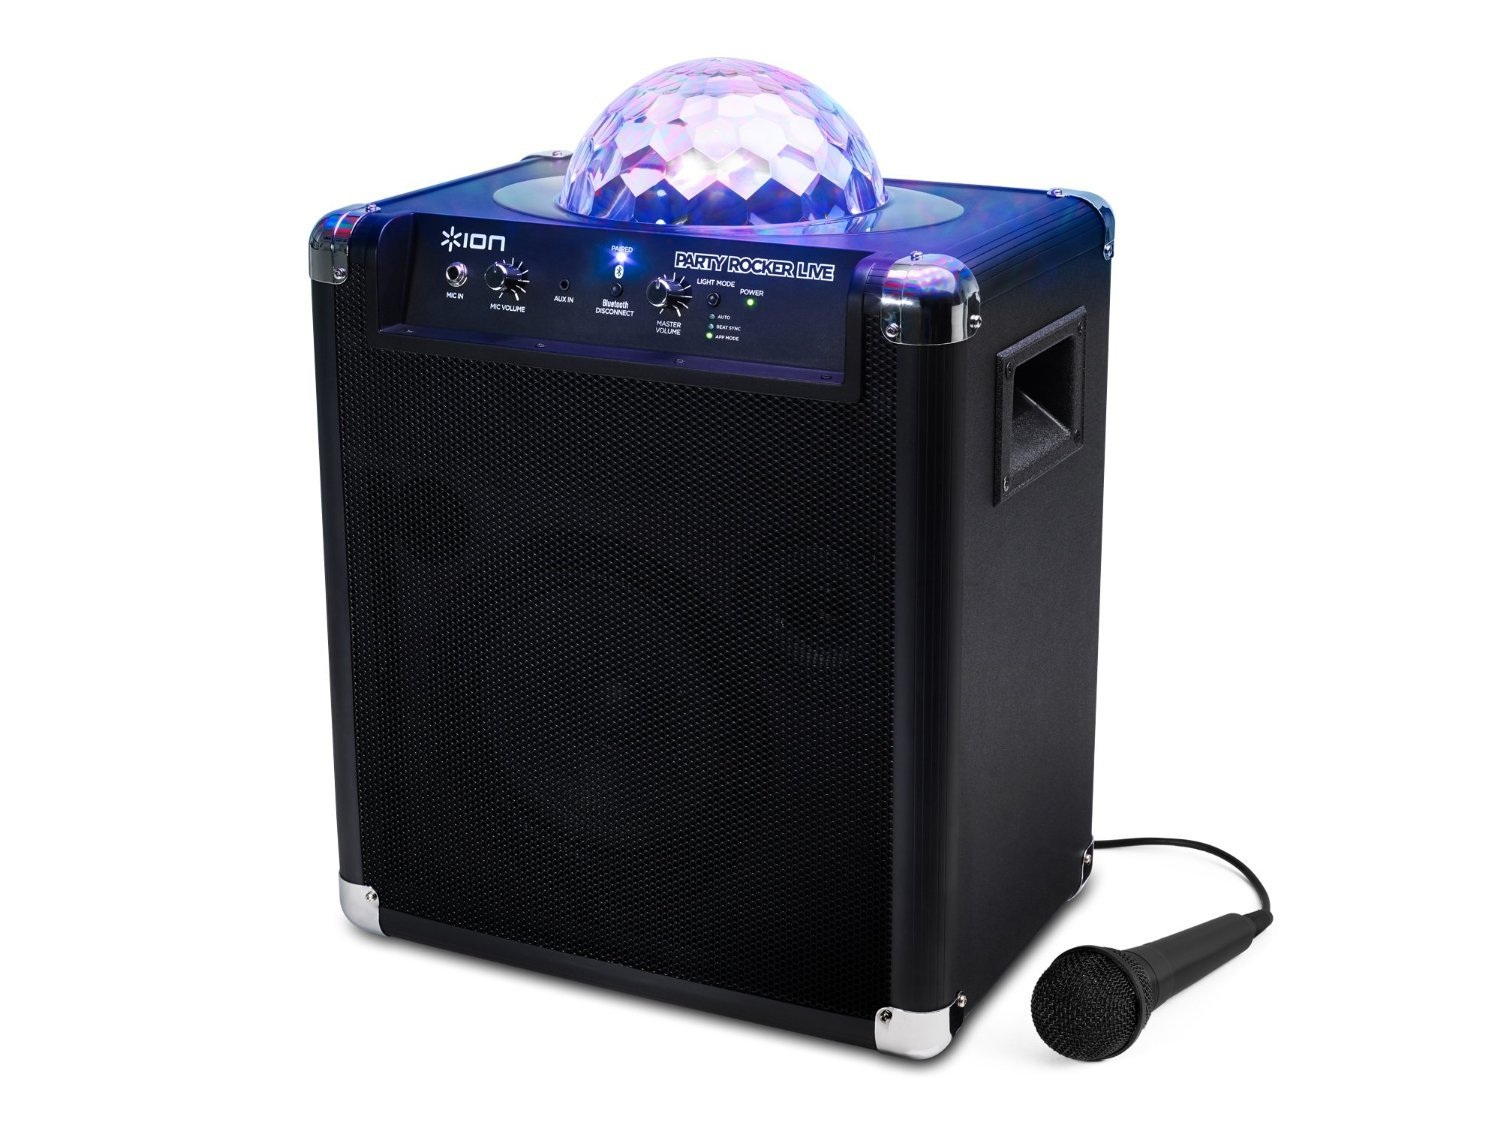 NEW! Ion Audio Party Rocker Live Bluetooth Speaker with Party Lights and App Control